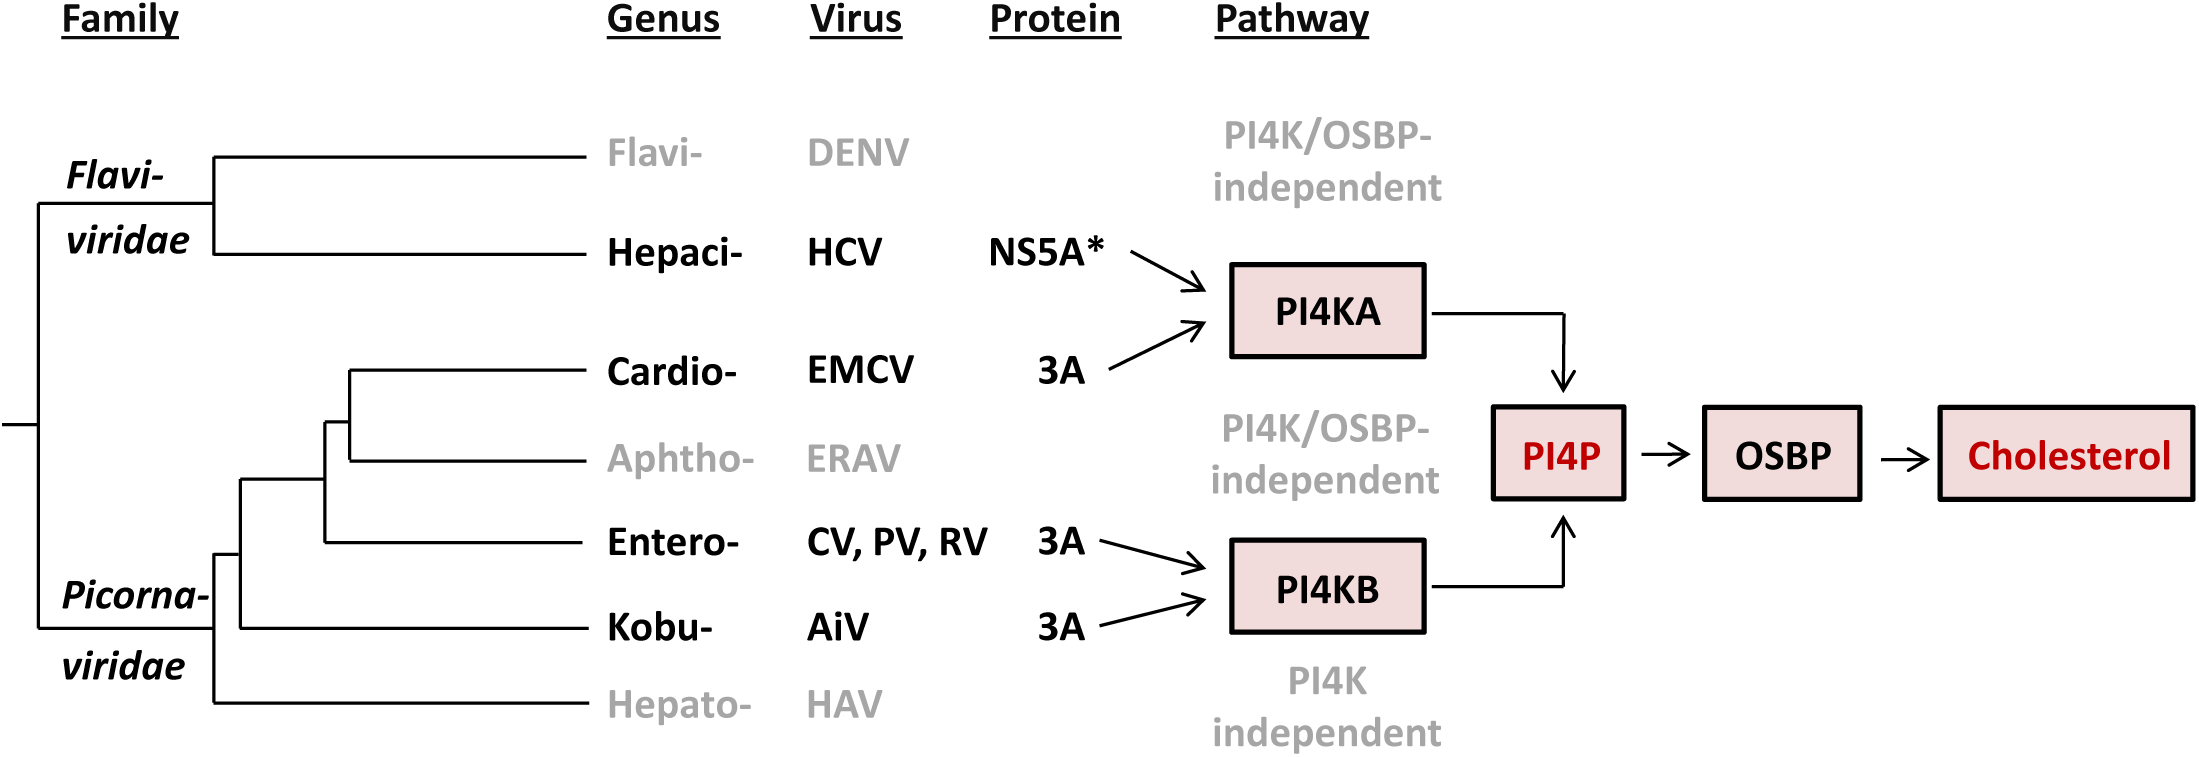 Evolution of the recruitment of lipid-modulating pathways by picorna- and flaviviruses.